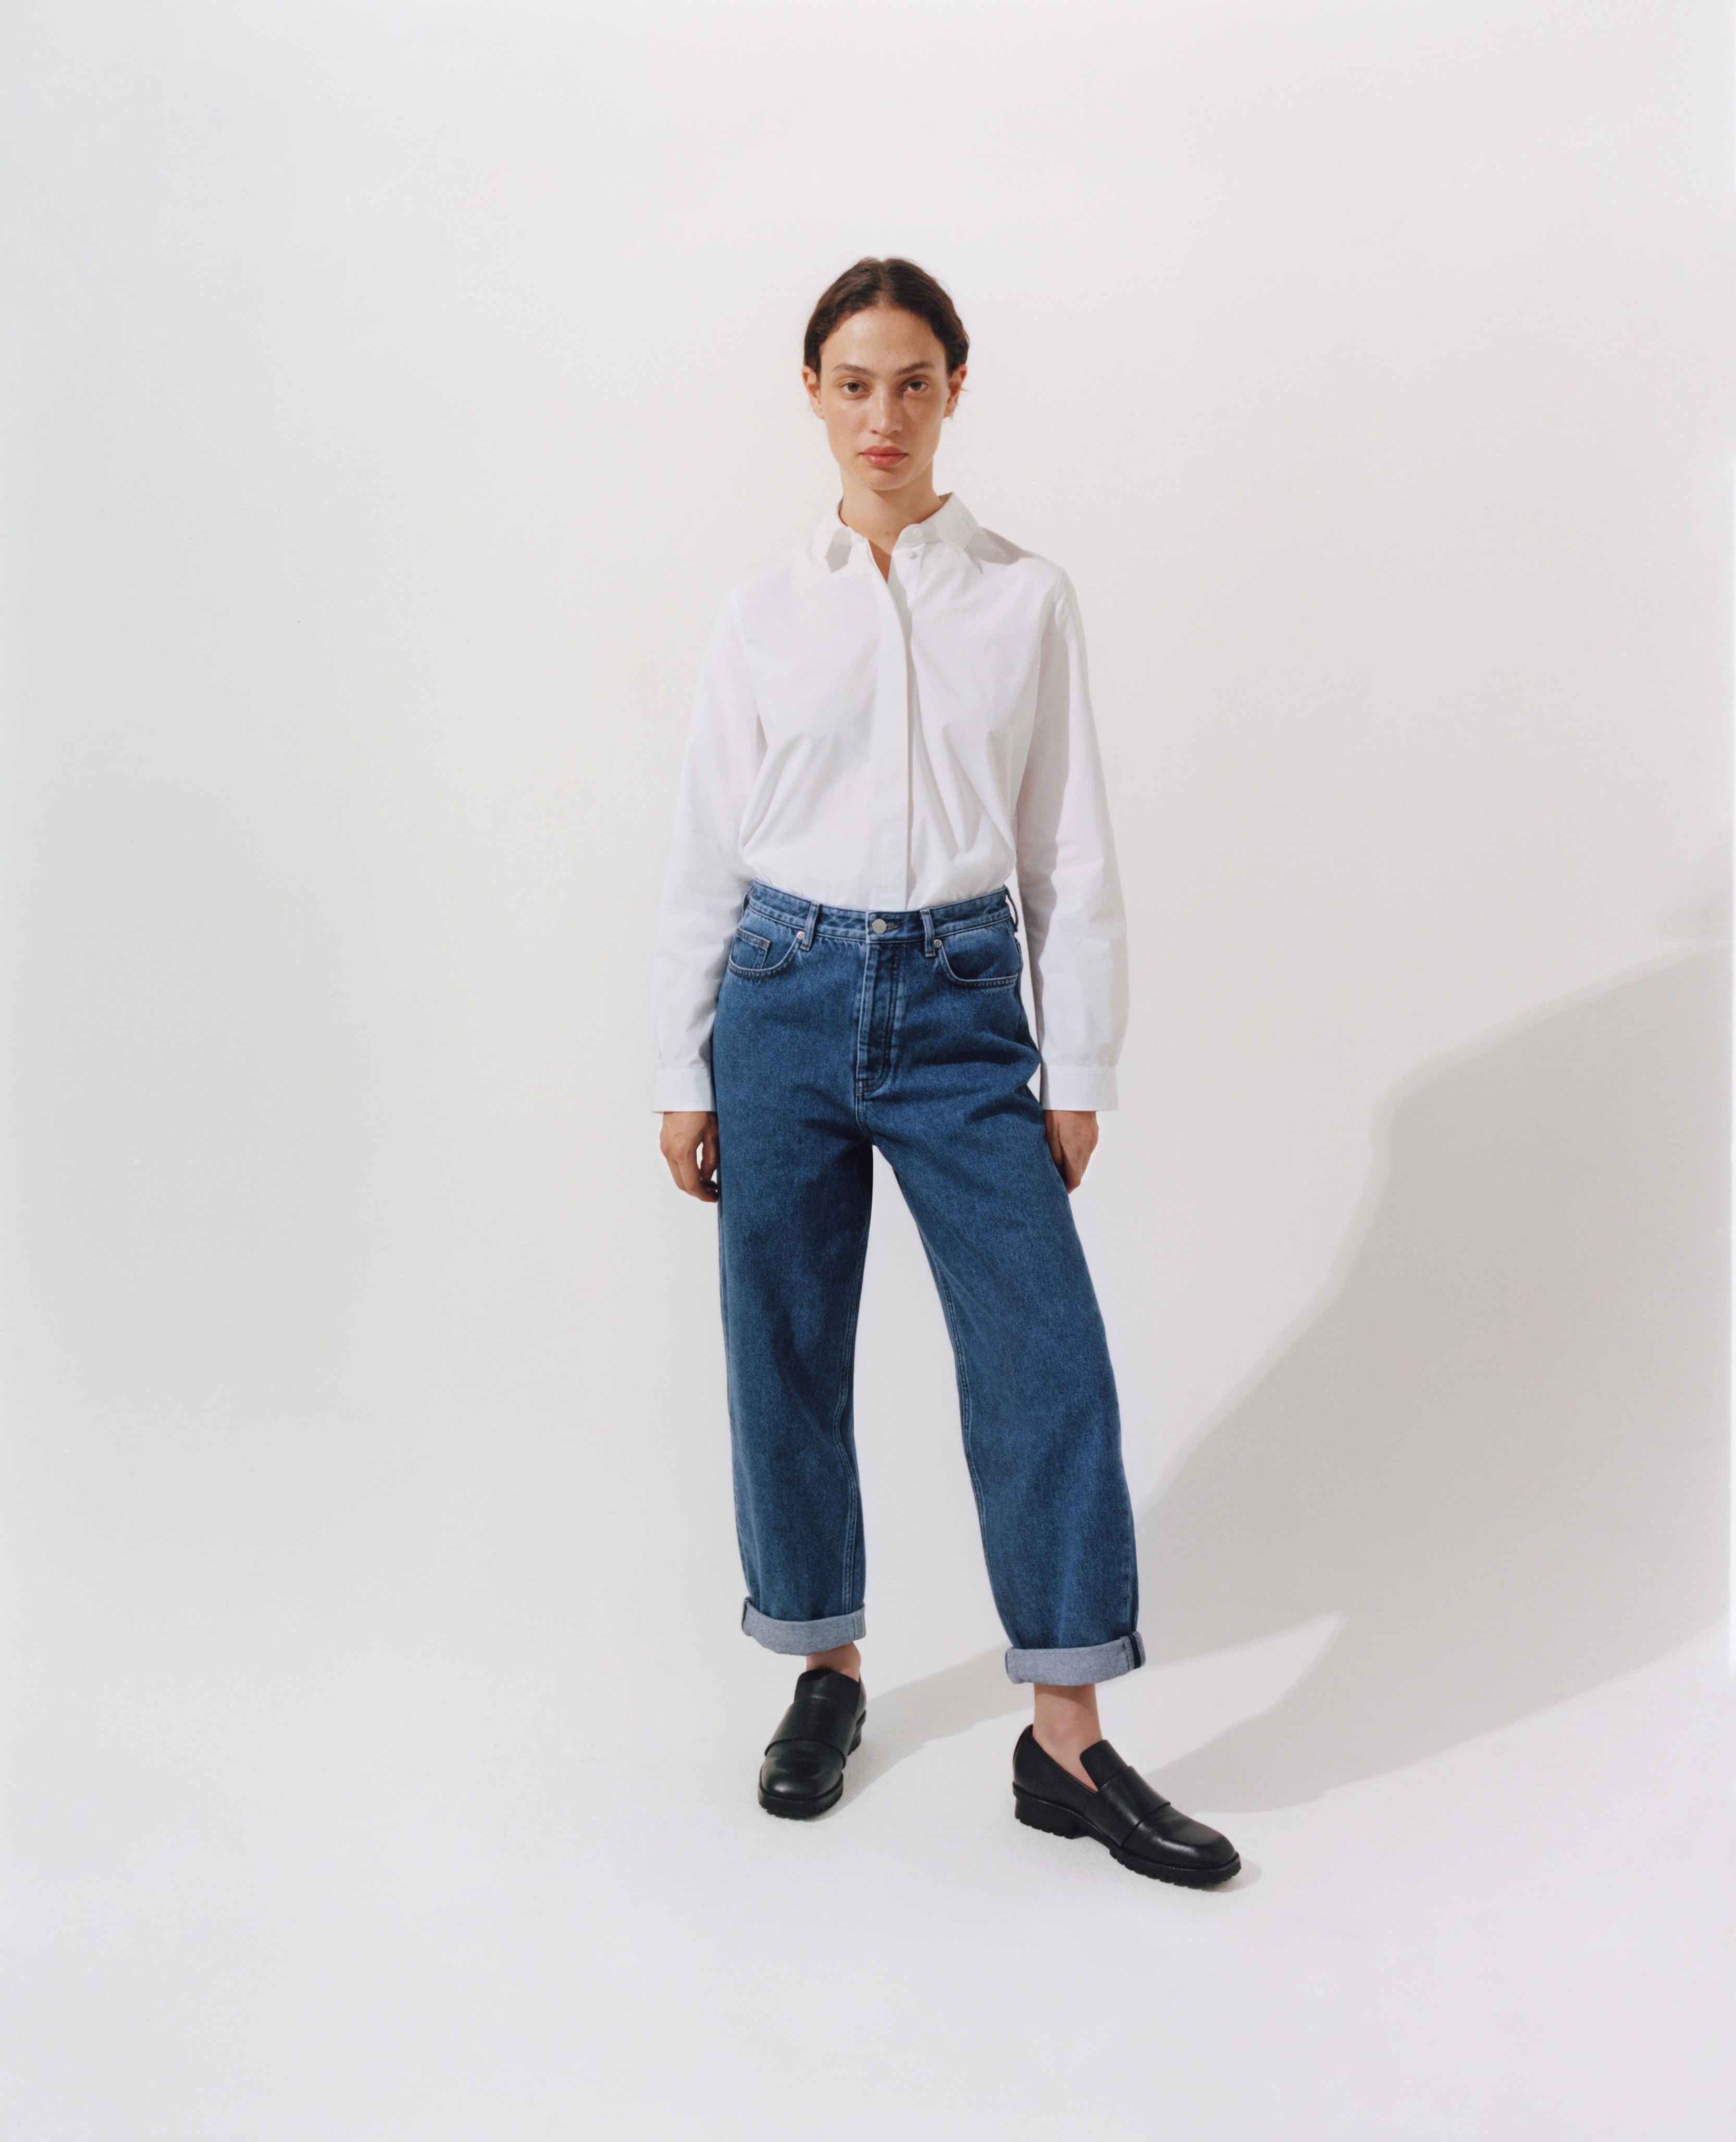 prepp-chic-style-cos-jeans